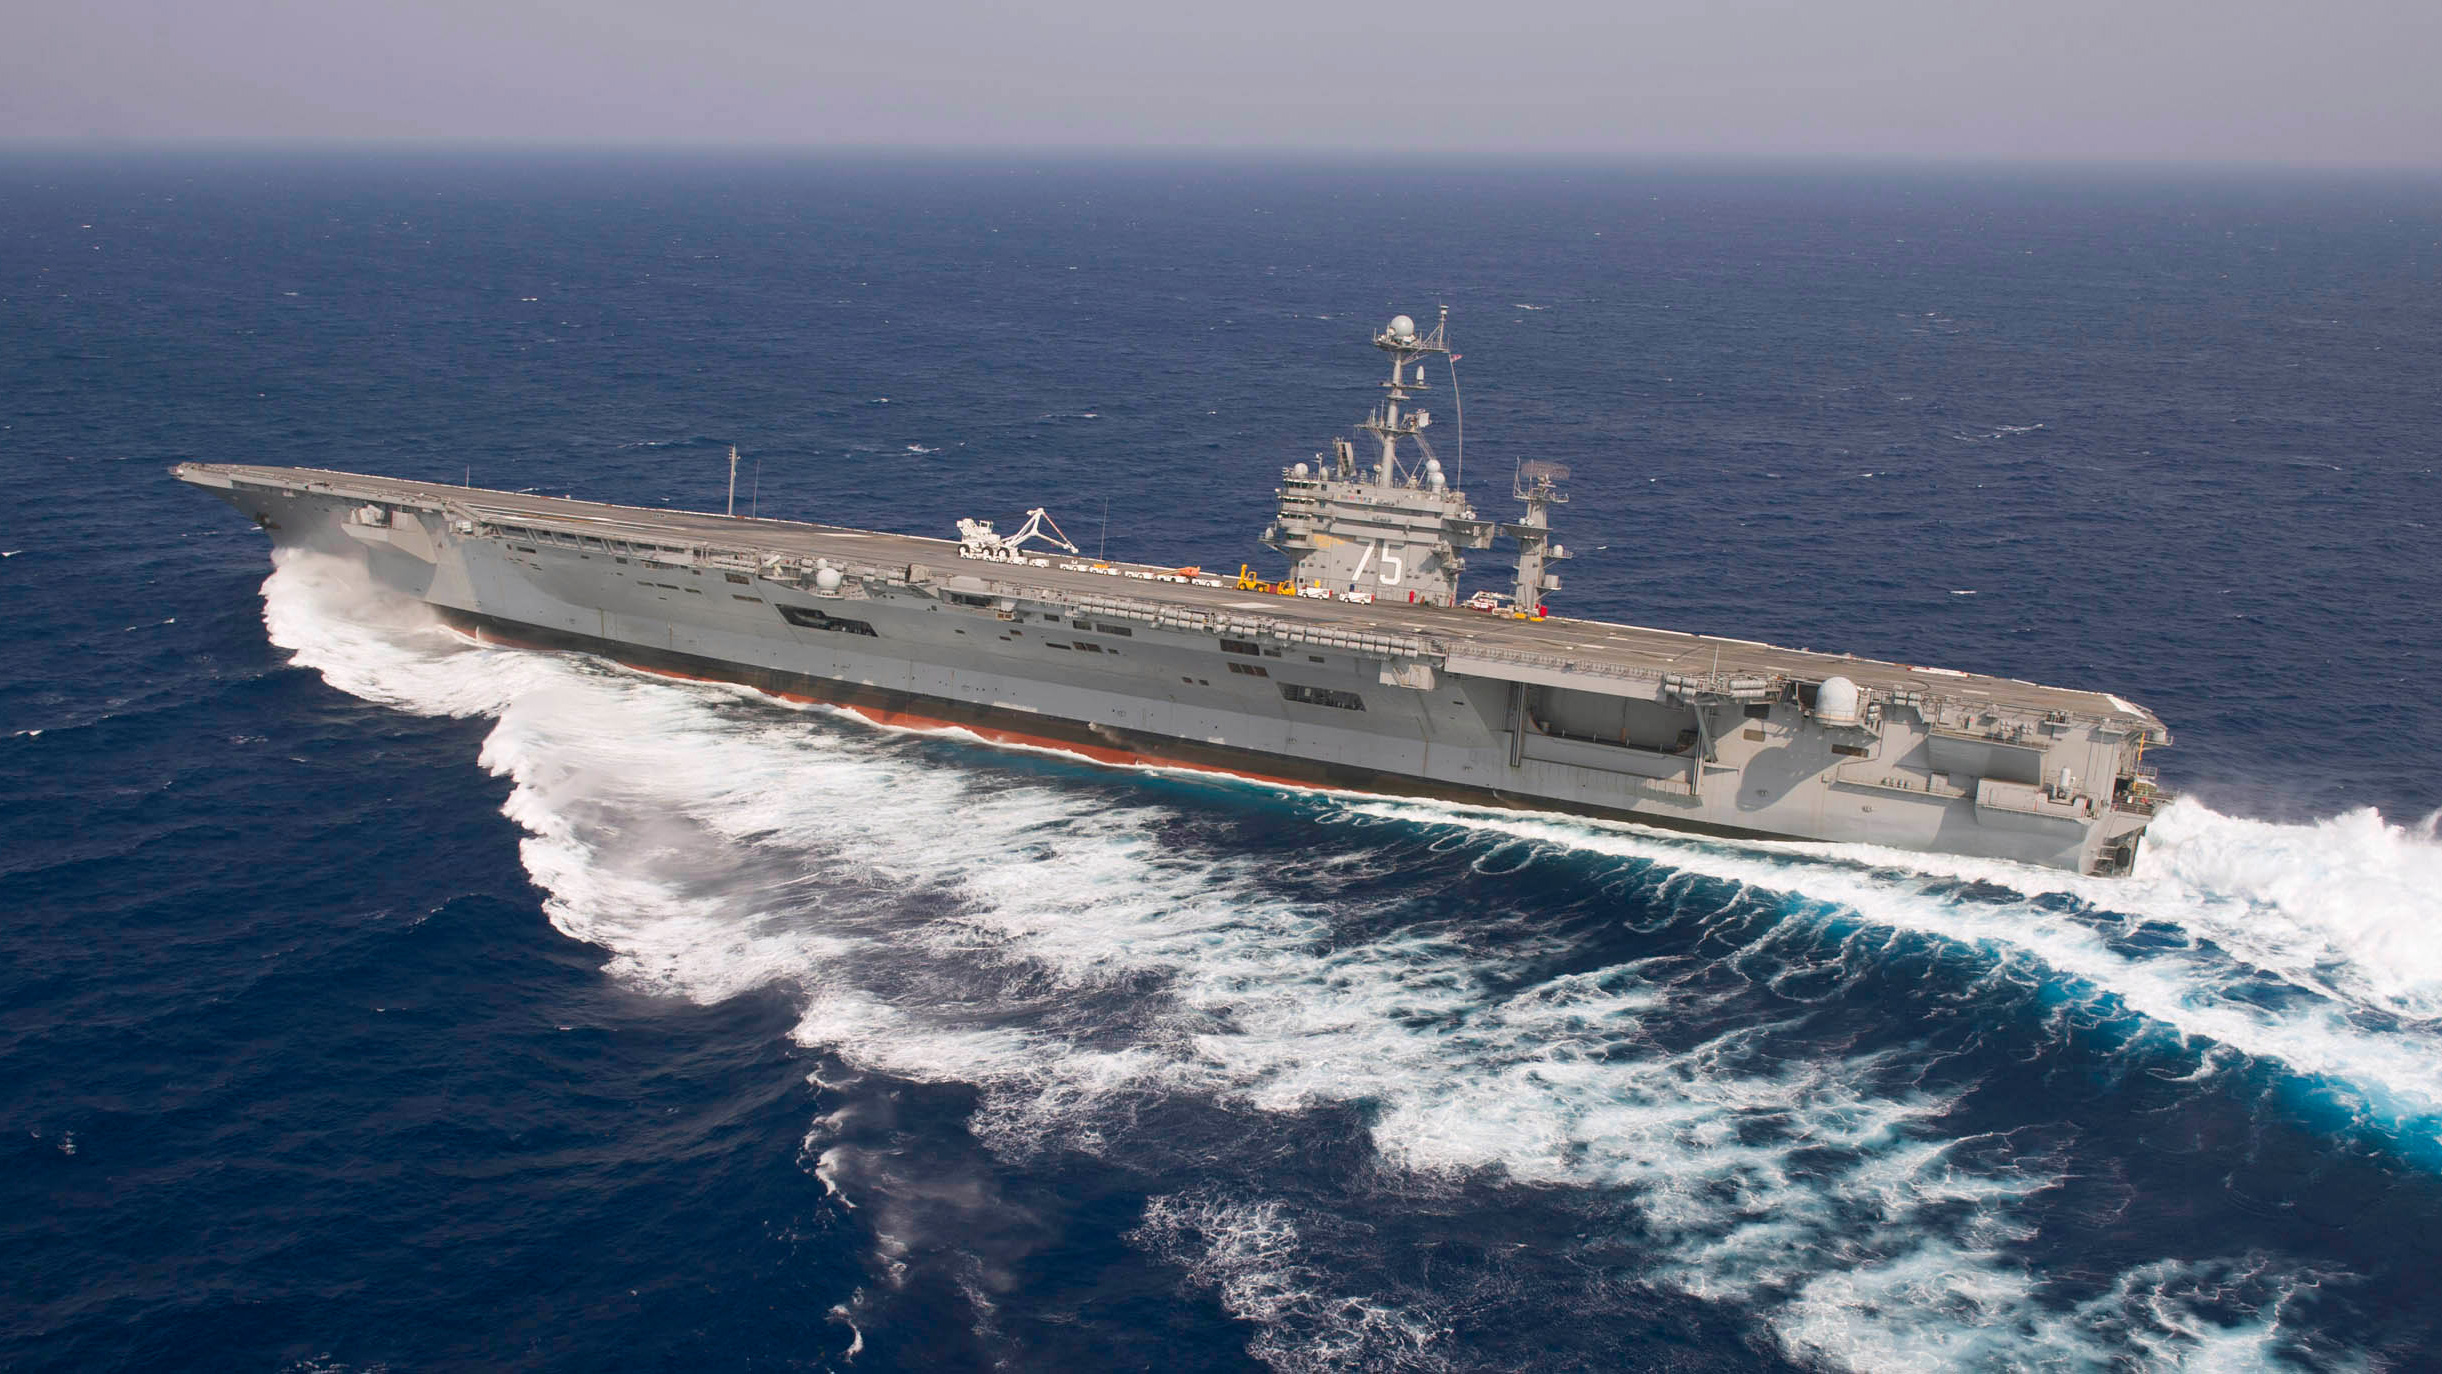 Click here to read Stunning Image of US Navy Nuclear Supercarrier Skidding Like Crazy Over the Atlantic